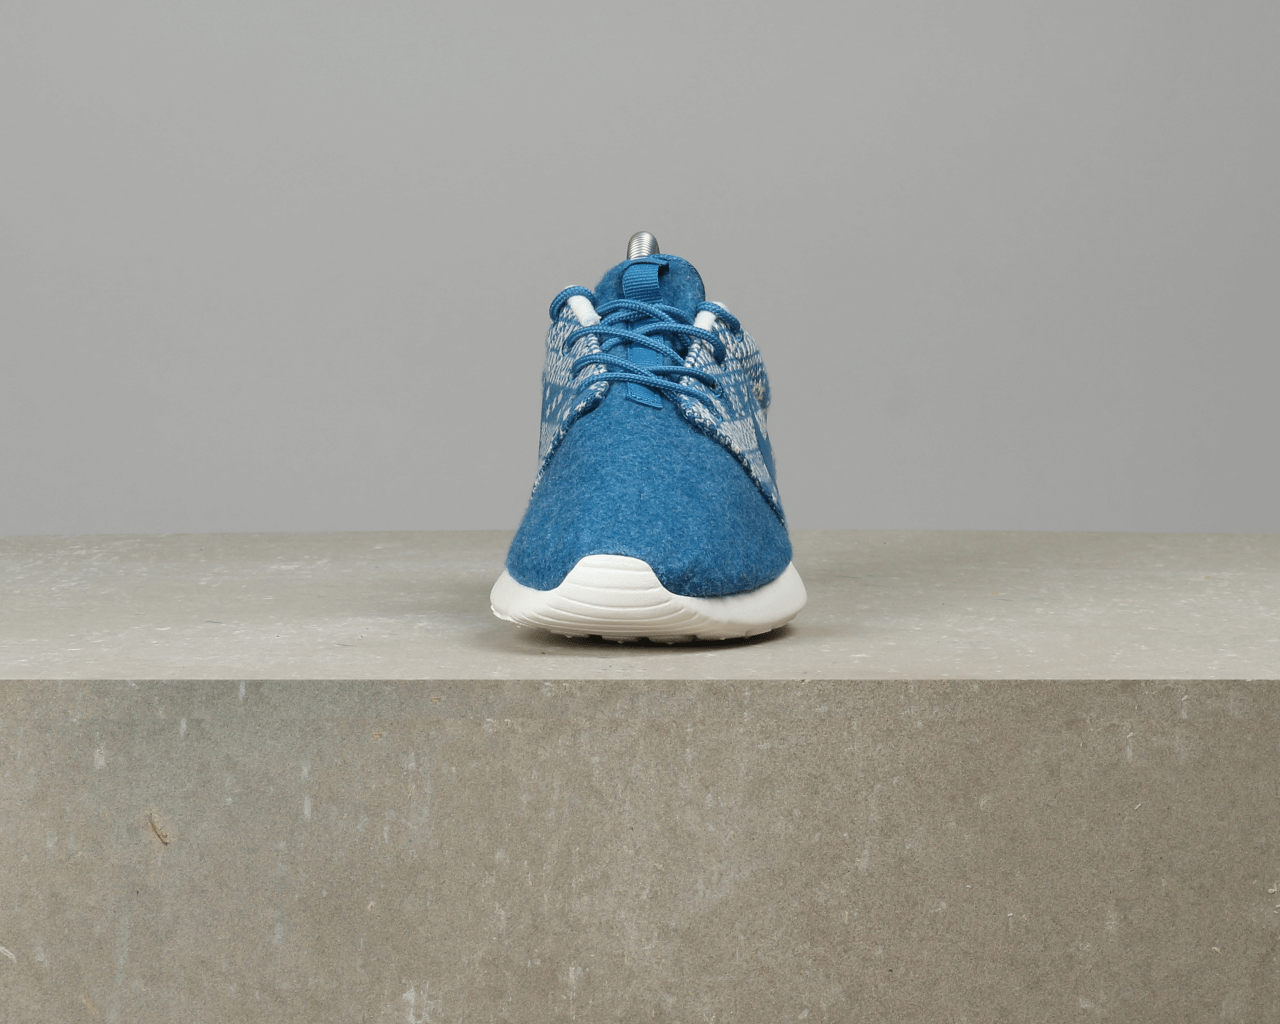 brand new 98d89 e5d87 Nike Wmns Roshe One Winter - Brigade Blue - UK 6 | Products ...